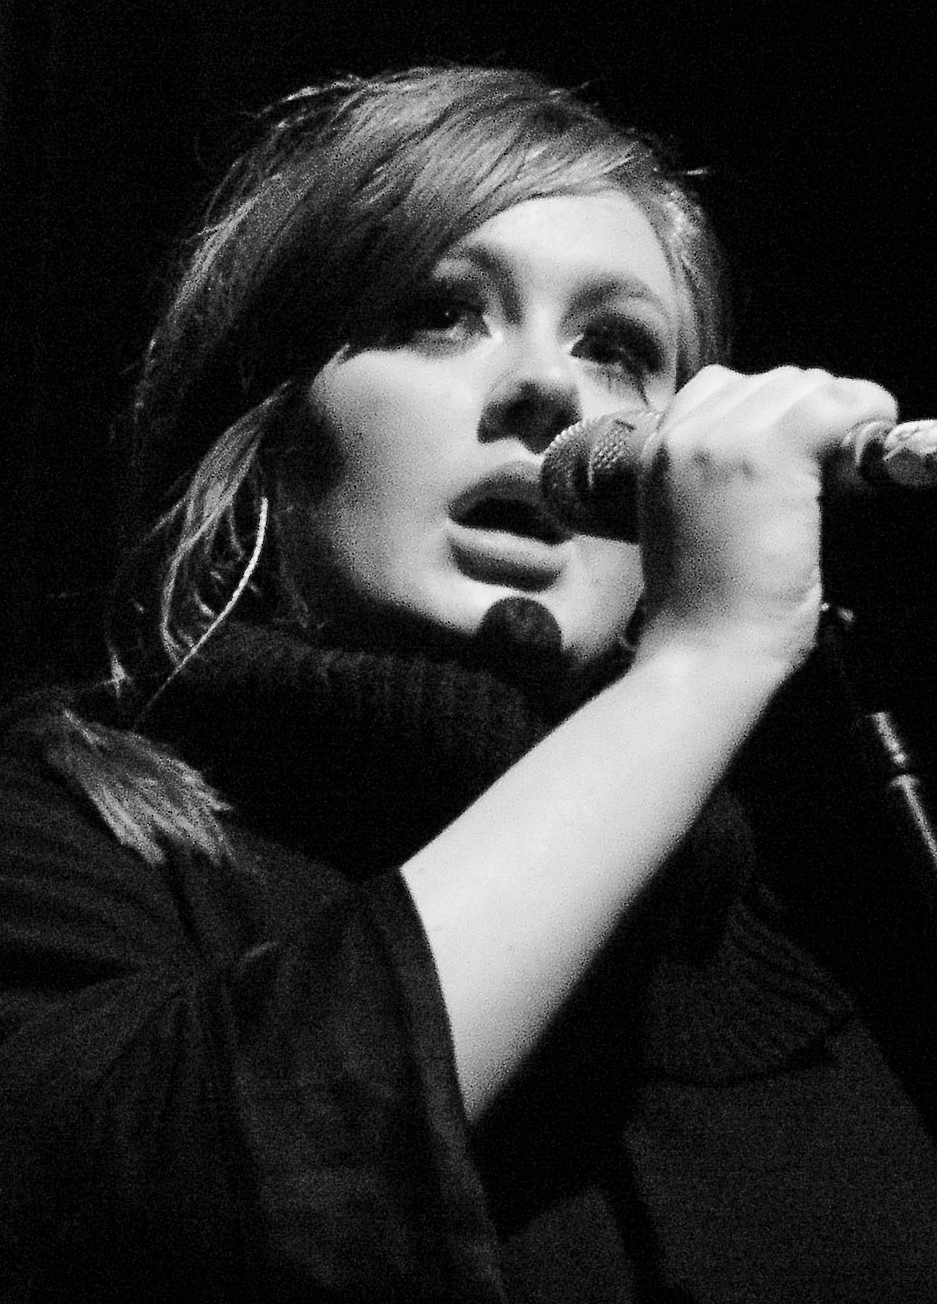 Adele_-_Live_2009_(4)_cropped